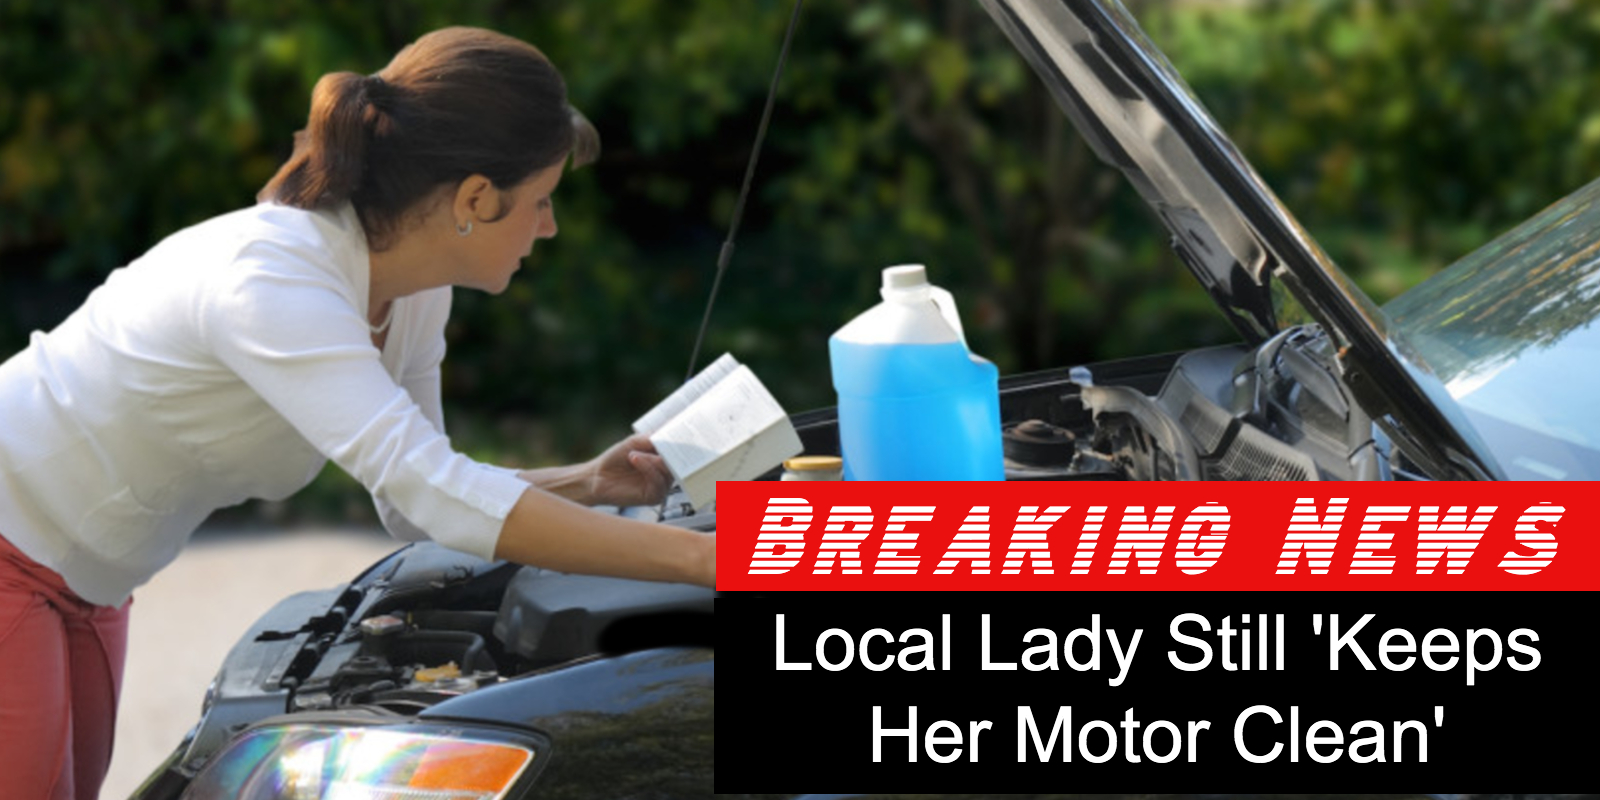 Woman doing maintenance under the hood of an SUV while holding a manual.